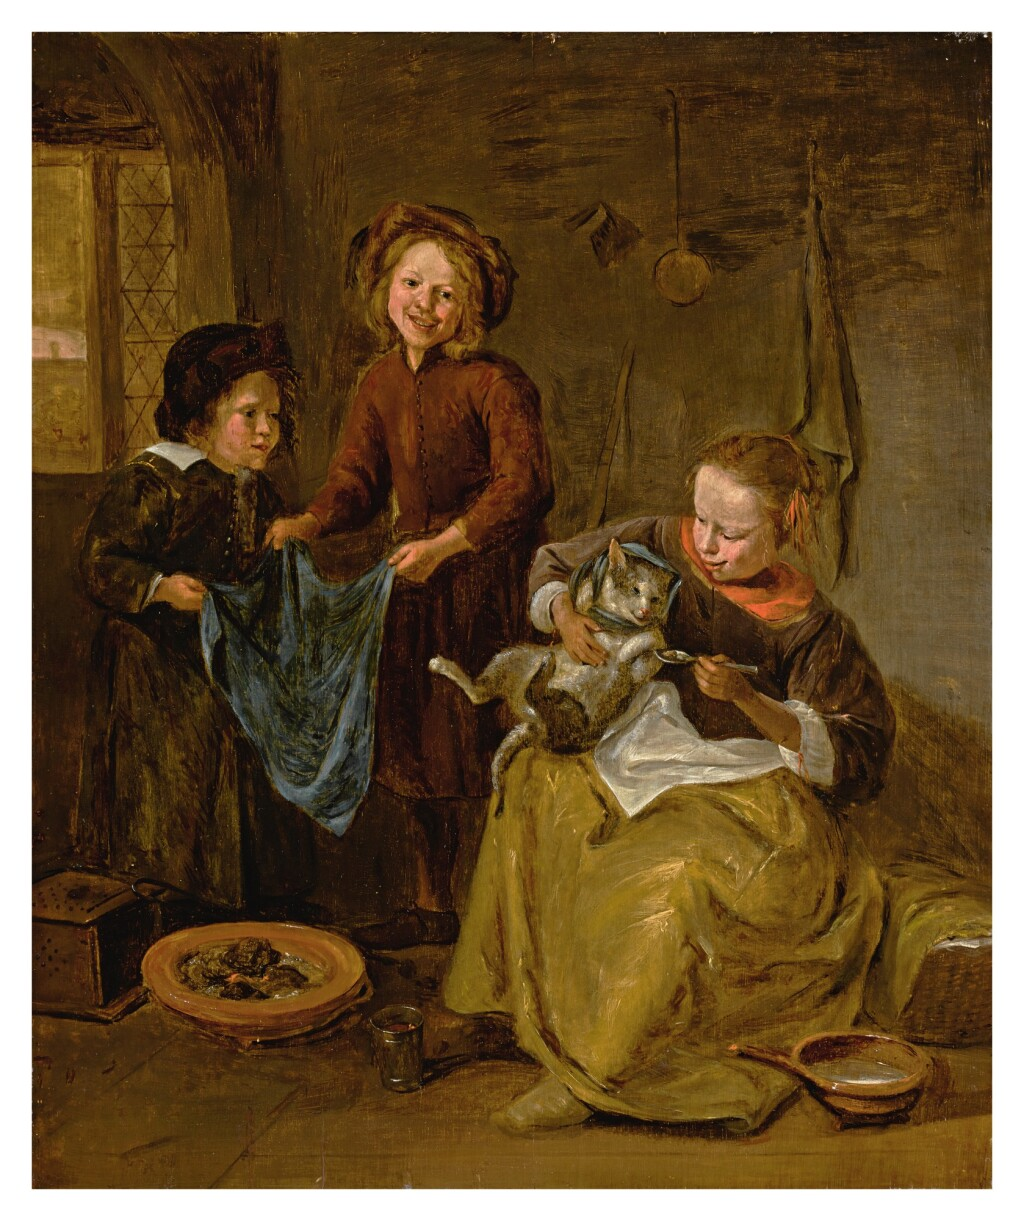 FOLLOWER OF JAN STEEN   AN INTERIOR WITH THREE CHILDREN PLAYING WITH A CAT